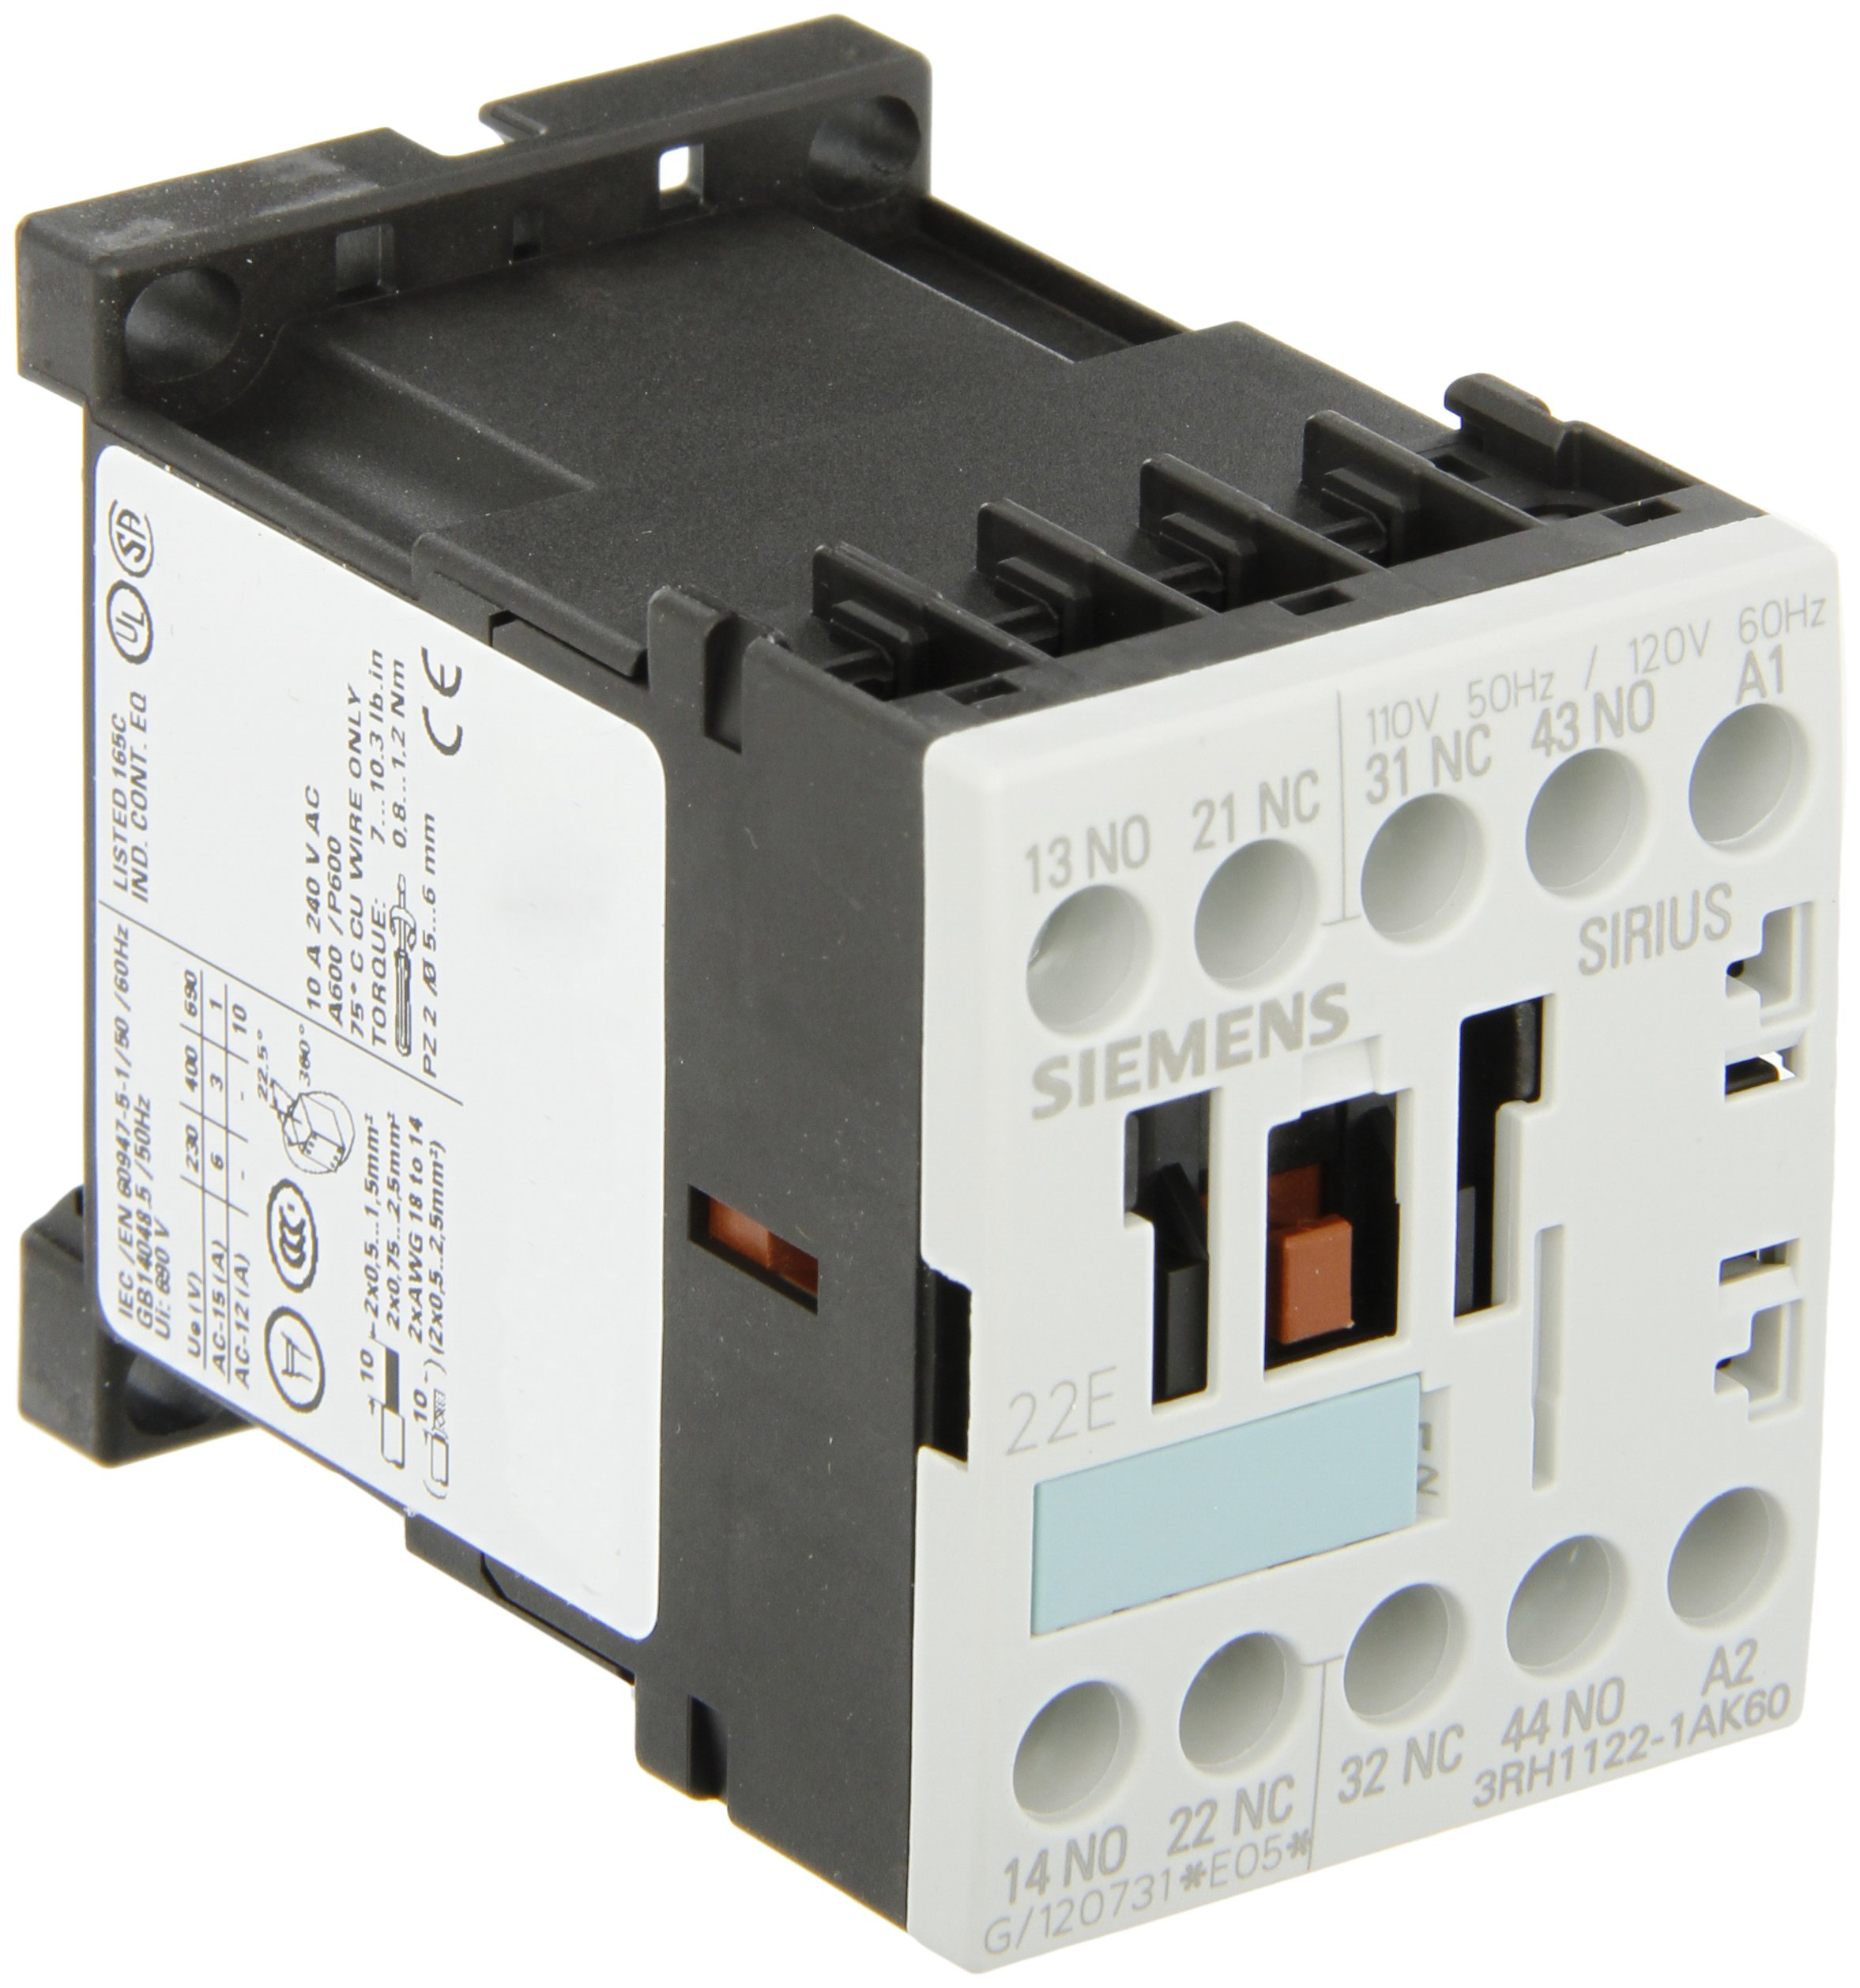 Siemens 3RH11 22-1AK60 Control Relay, Size S00, 35mm Standard Mounting Rail, AC Operation, Screw Connection, 22 E Identification Number, 2 NO + 2 NC Contacts, 120 V 60 Hz Control Supply Voltage